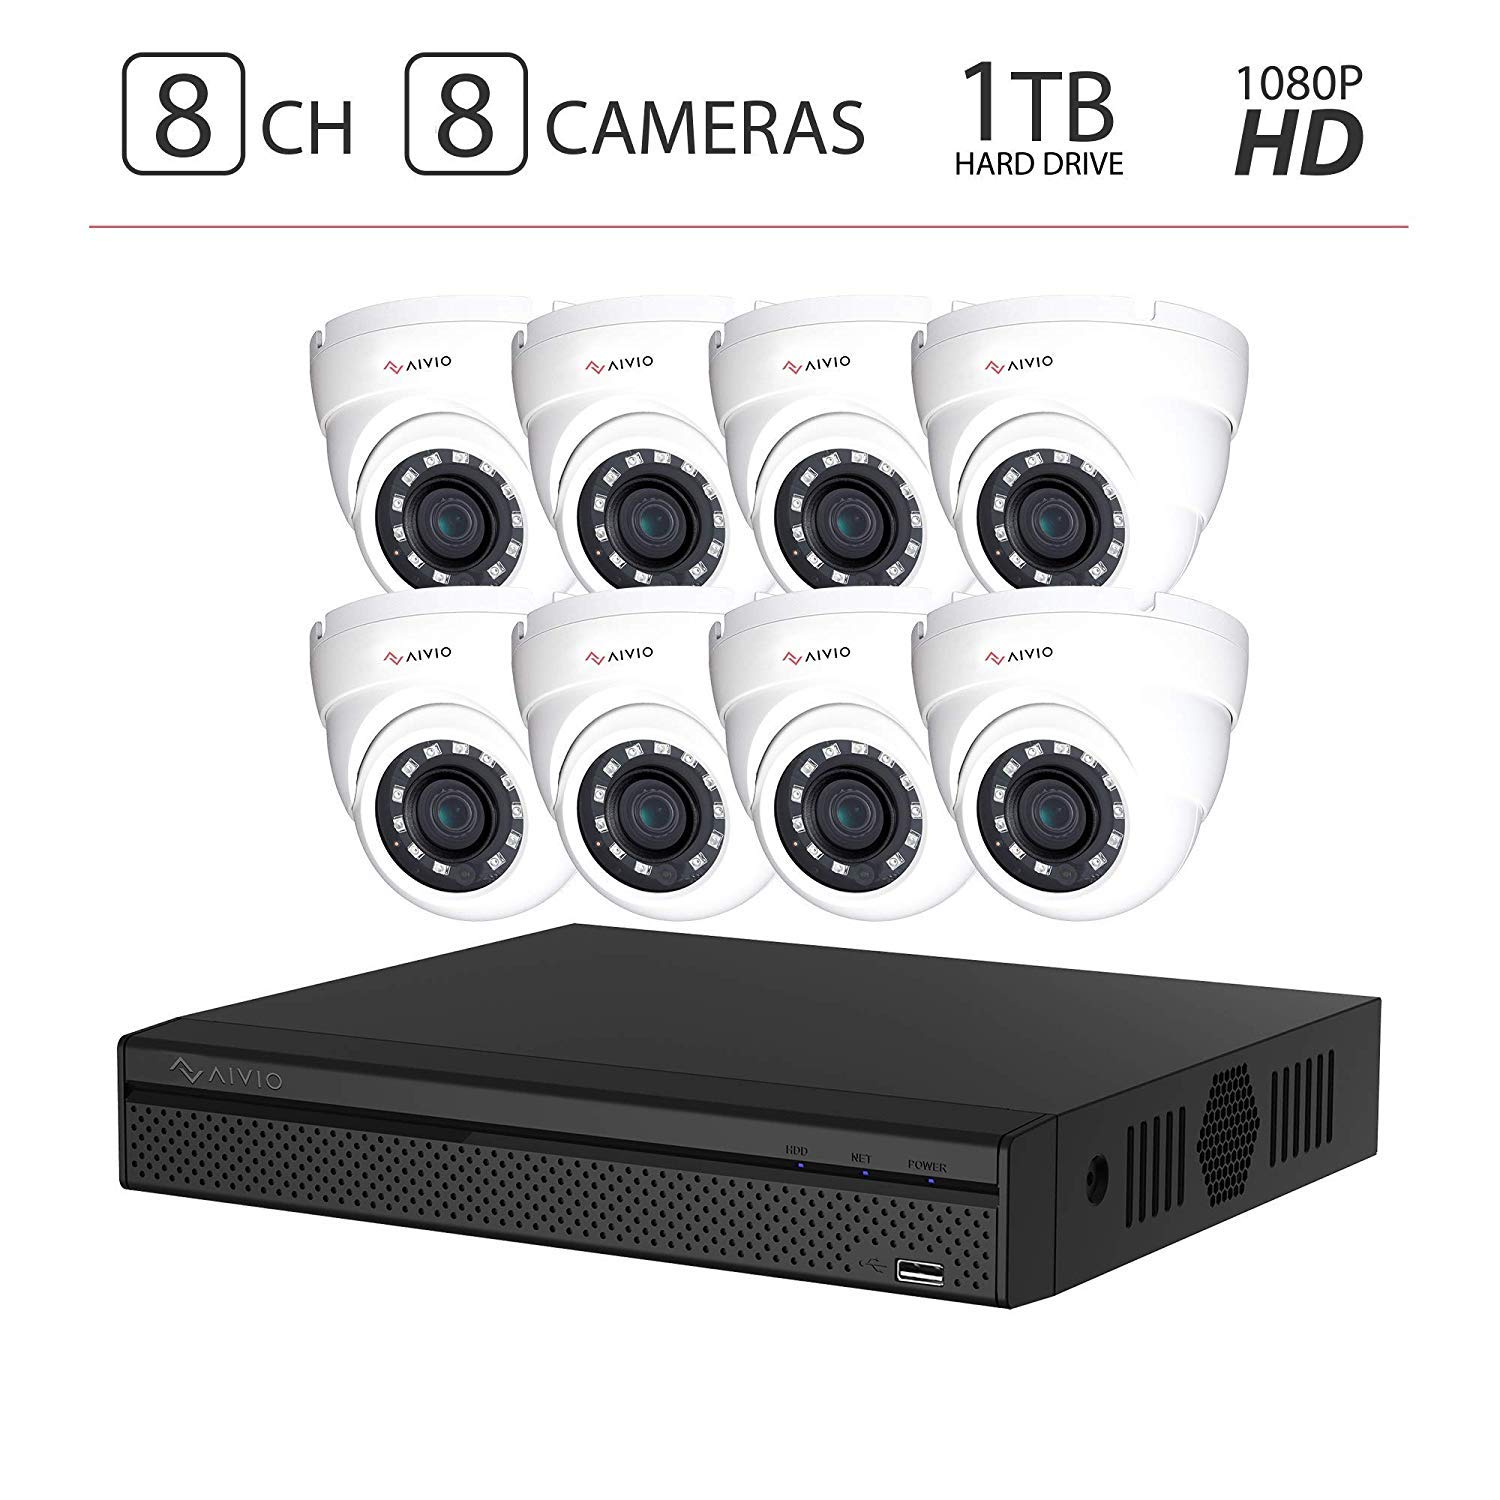 2019 Aivio Dahua OEM 1080P 4CH Home Security Camera System 1TB Hard Drive, Surveillance DVR kit w 4X 2MP 1920×1080 HDCVI Outdoor IP67 Bullet Cameras 1T HDD XVR5104HS-S2 HAC-HFW1220S